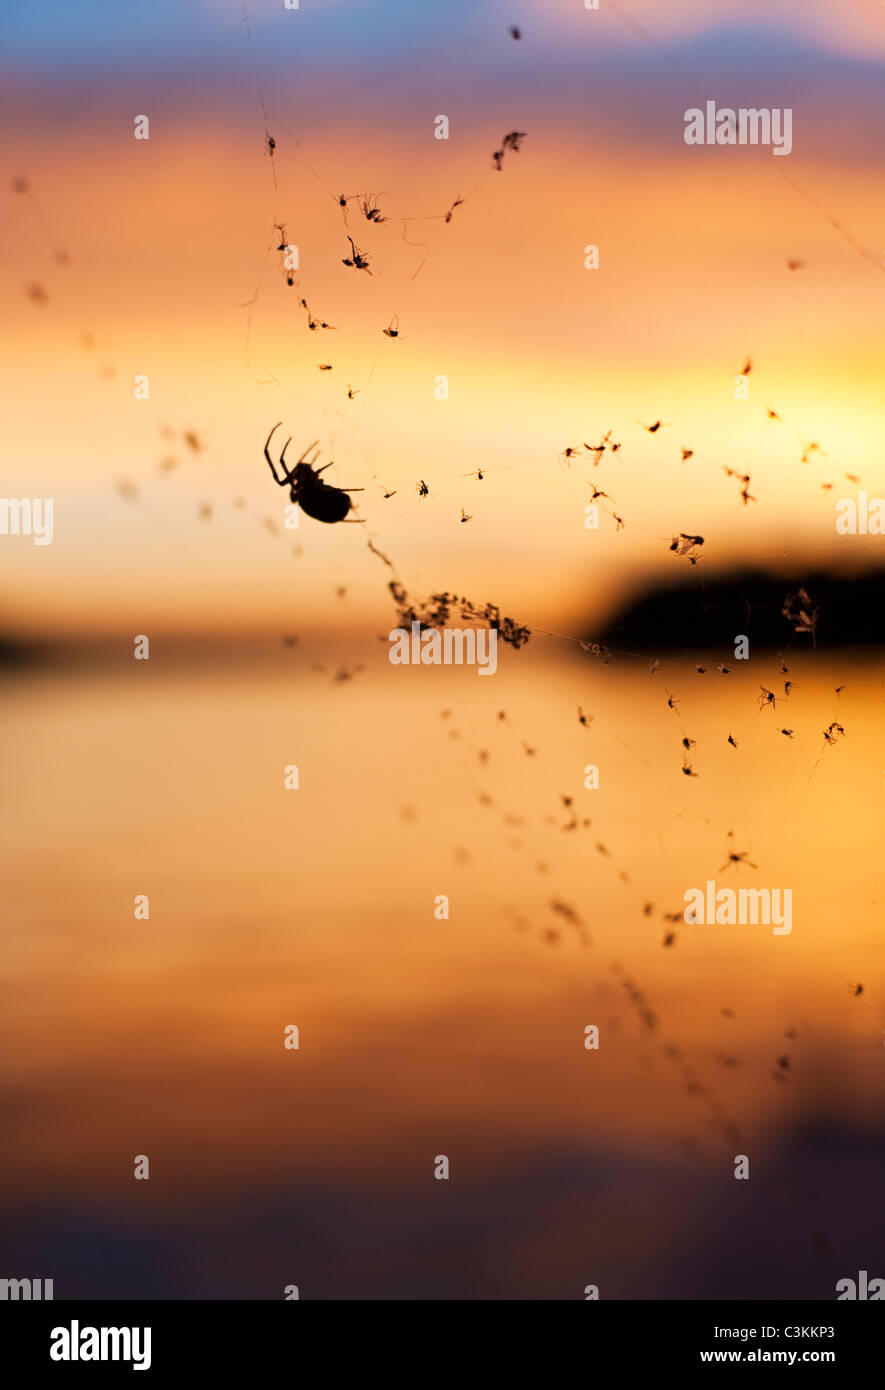 Silhouette of spider on web against sunset - Stock Image